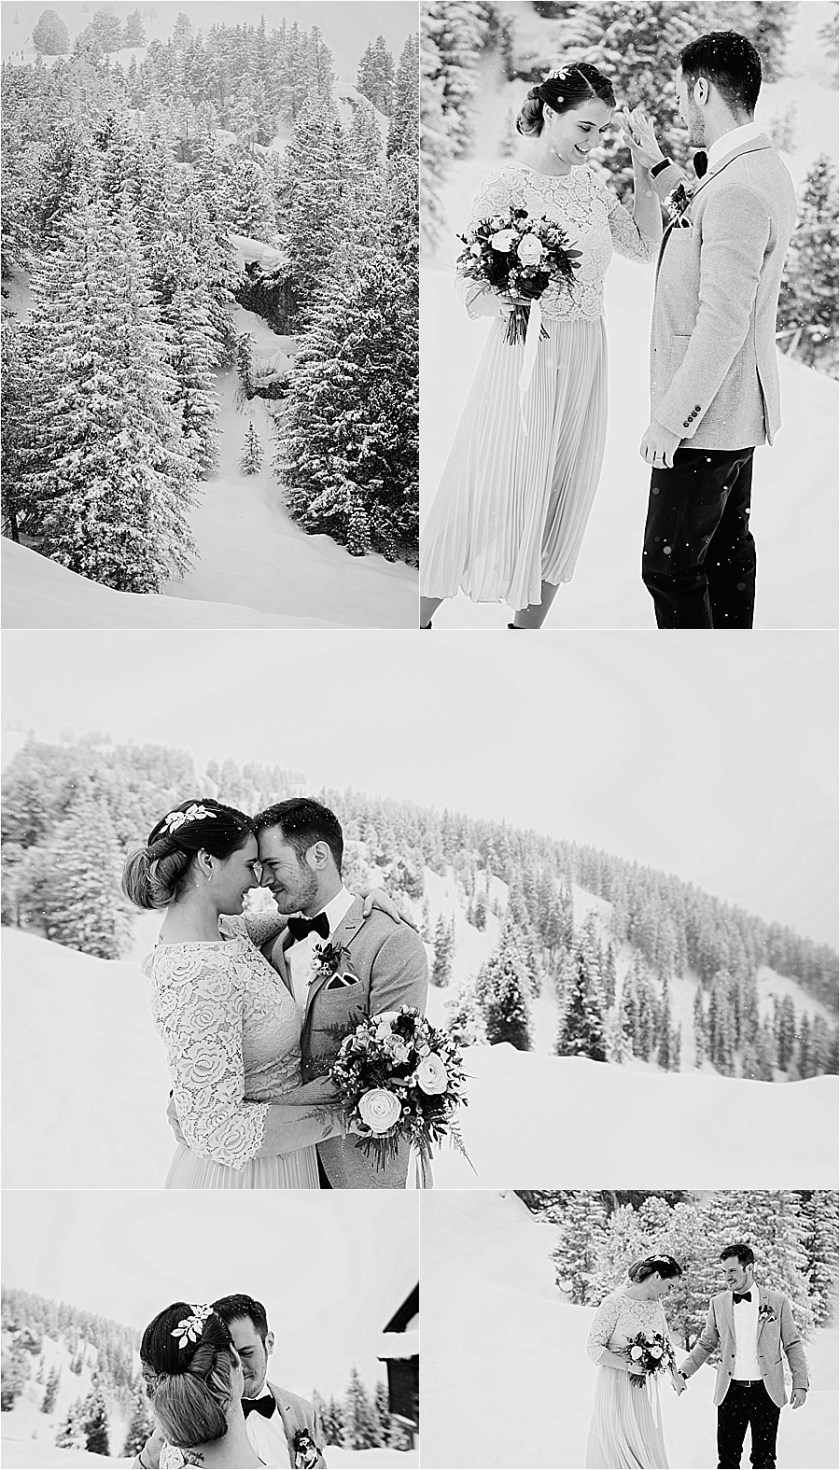 The bride and groom dance in the snow before their winter mountain elopement on the Penken in Mayrhofen by Wild Connections Photography